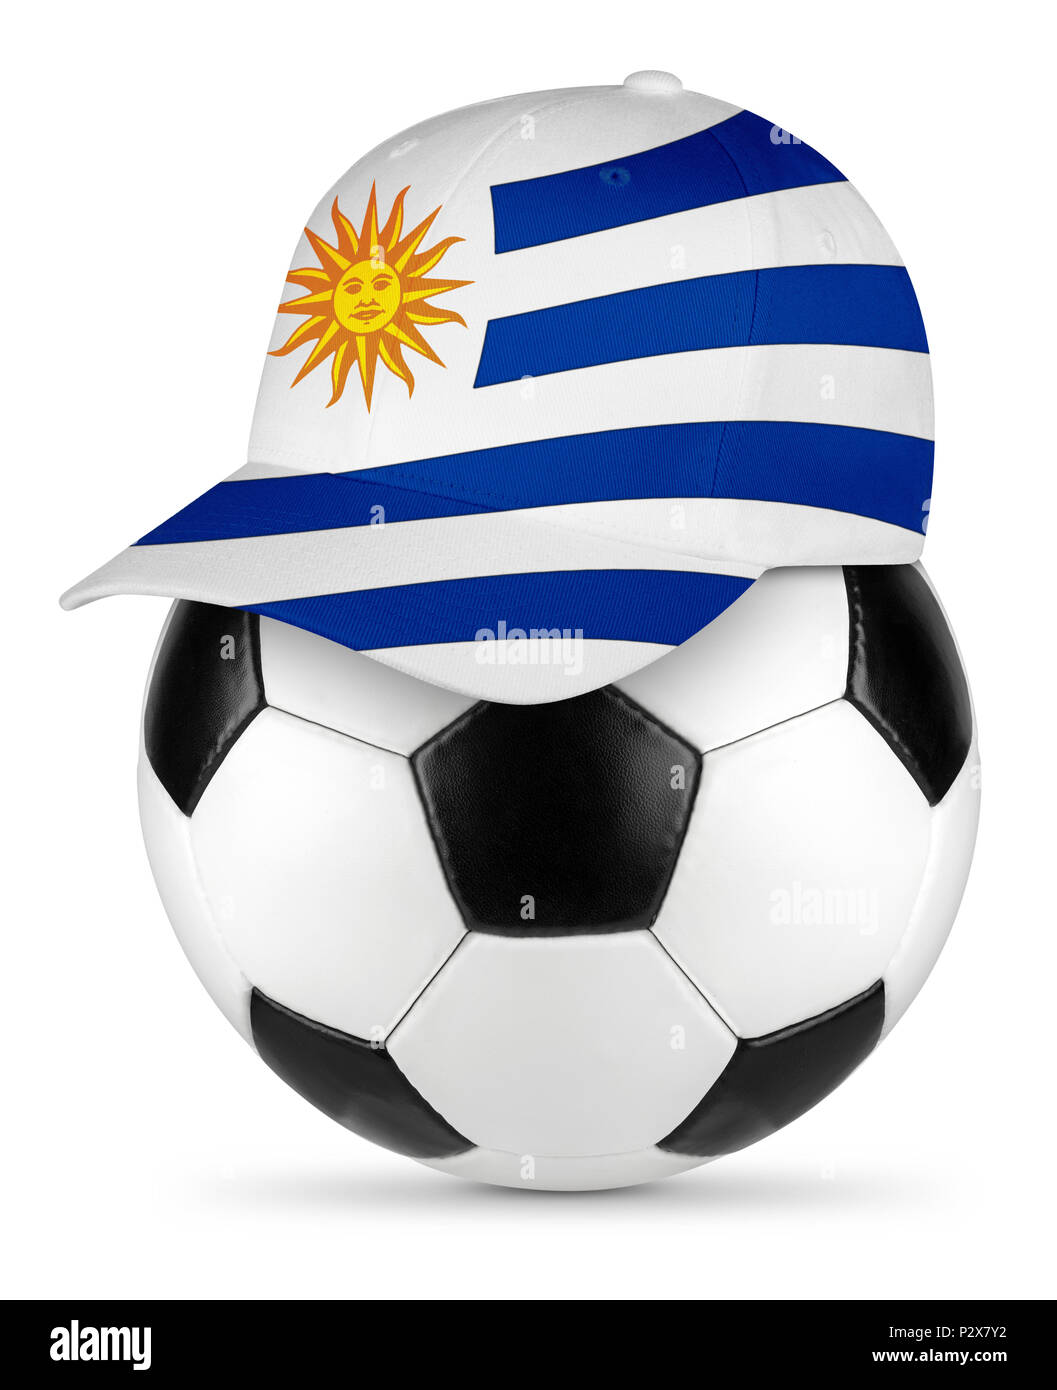 89ef03c7674 Classic black white leather soccer ball uruguay uruguayan flag baseball fan  cap isolated background sport football